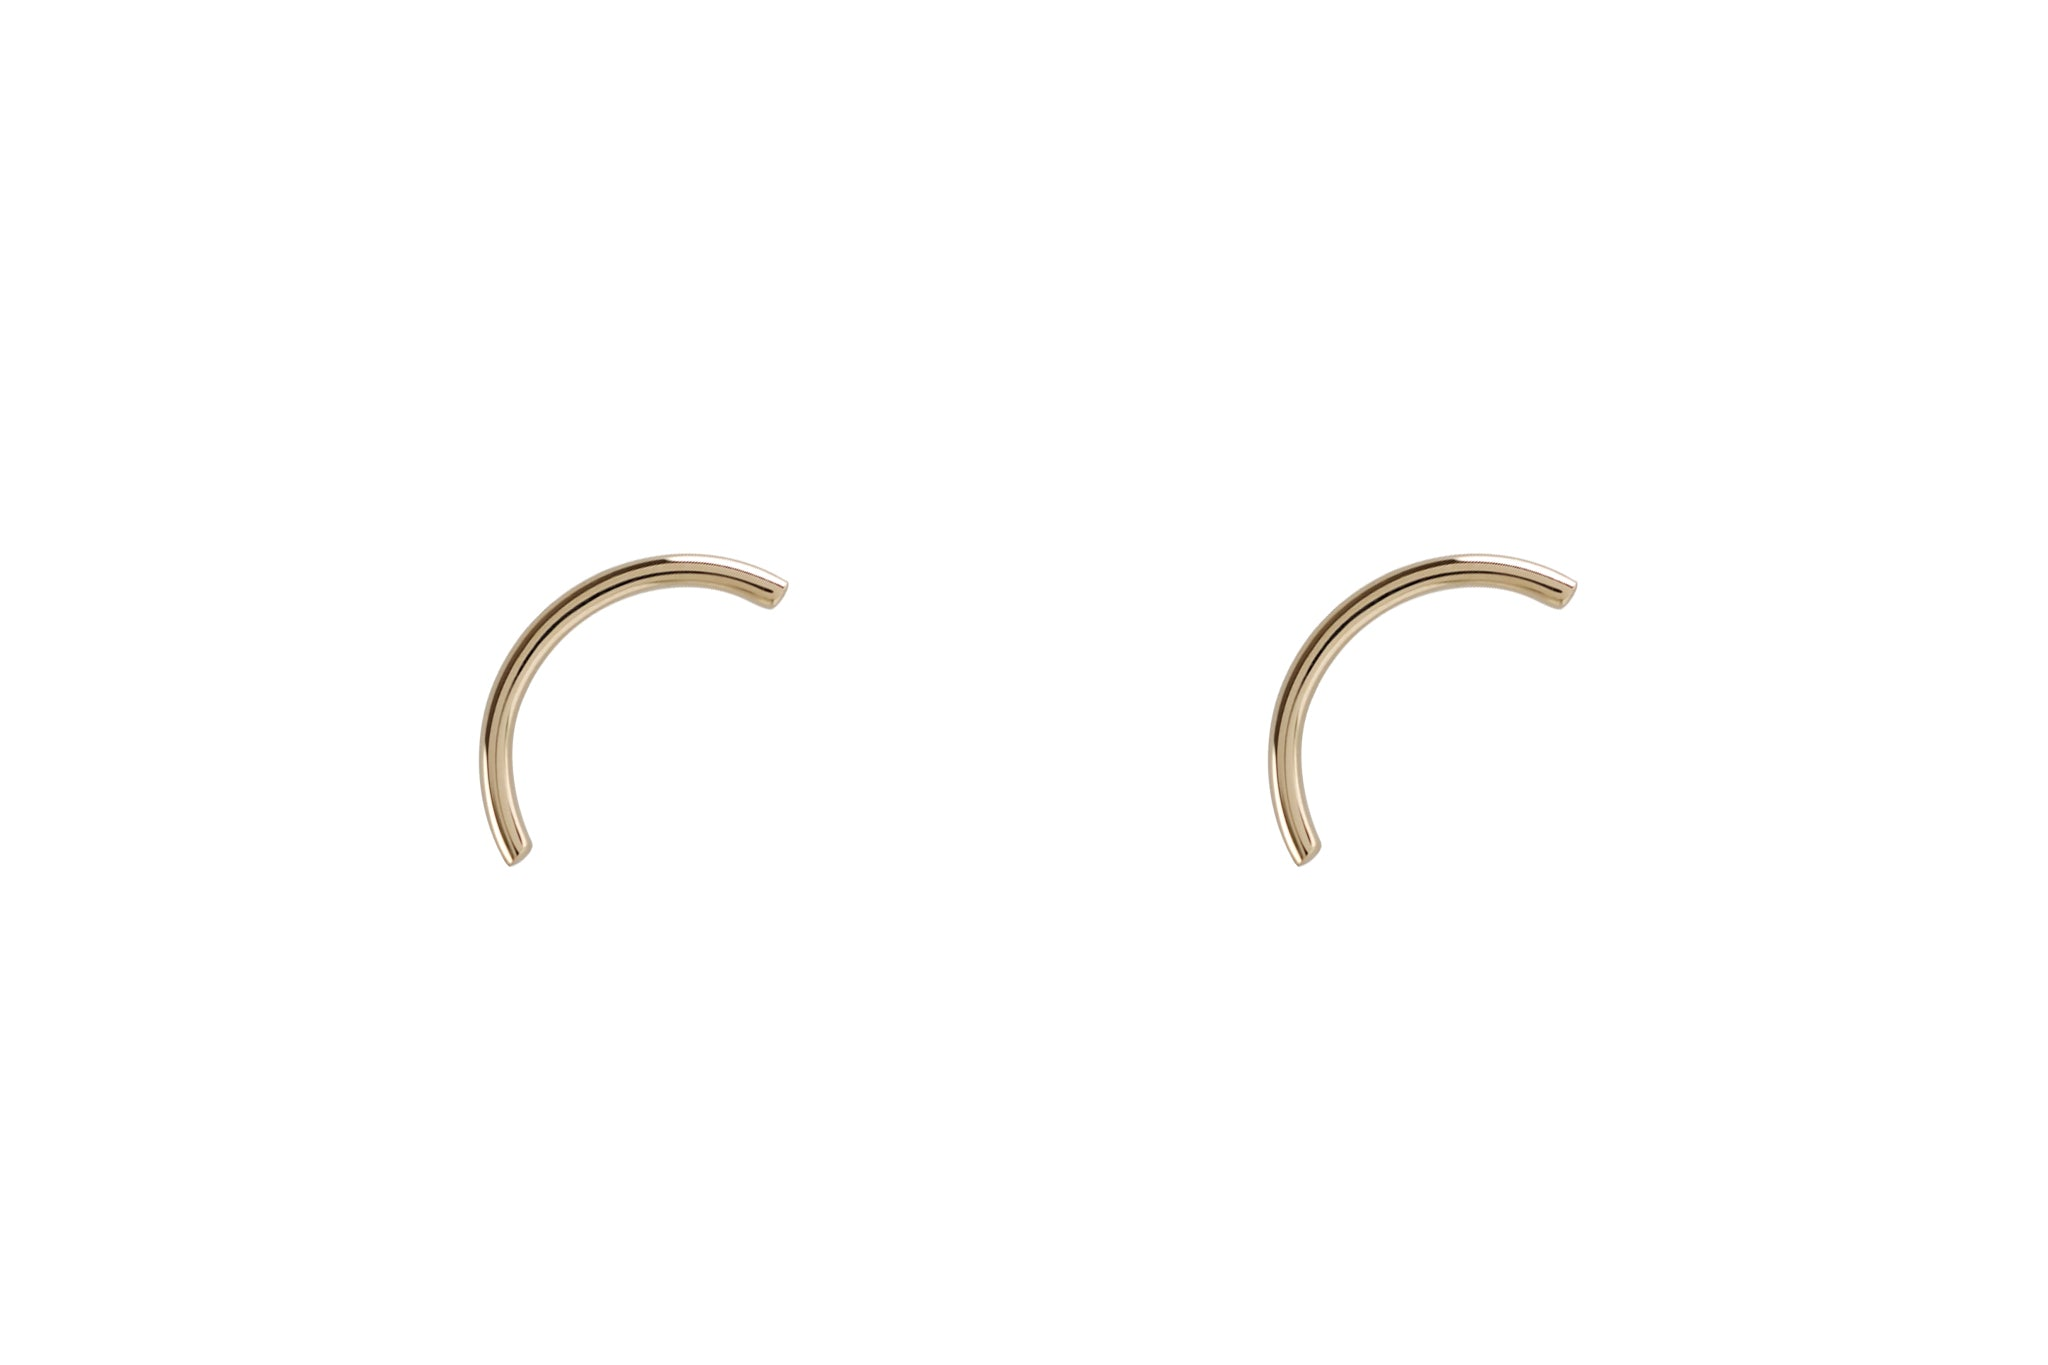 14k Gold Arc Stud Earrings